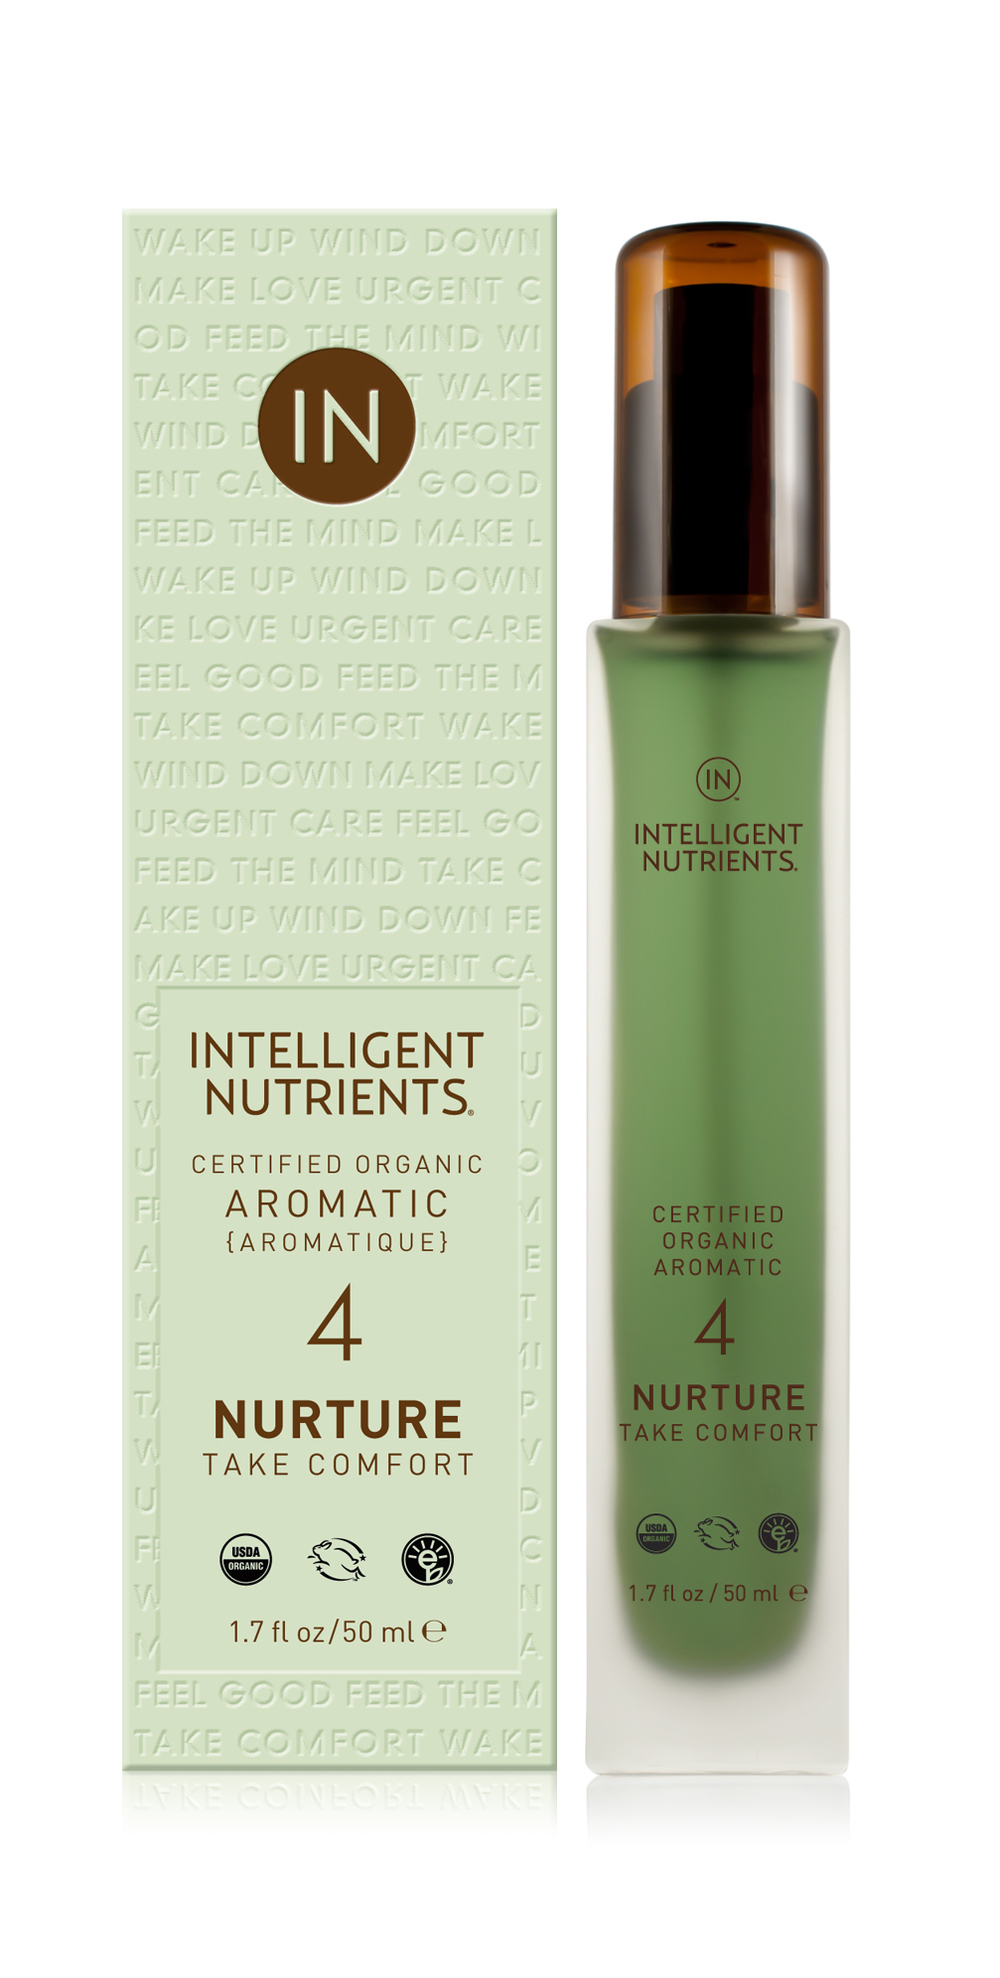 (4) Nurture Spirit Essence (DKK595/50ml)